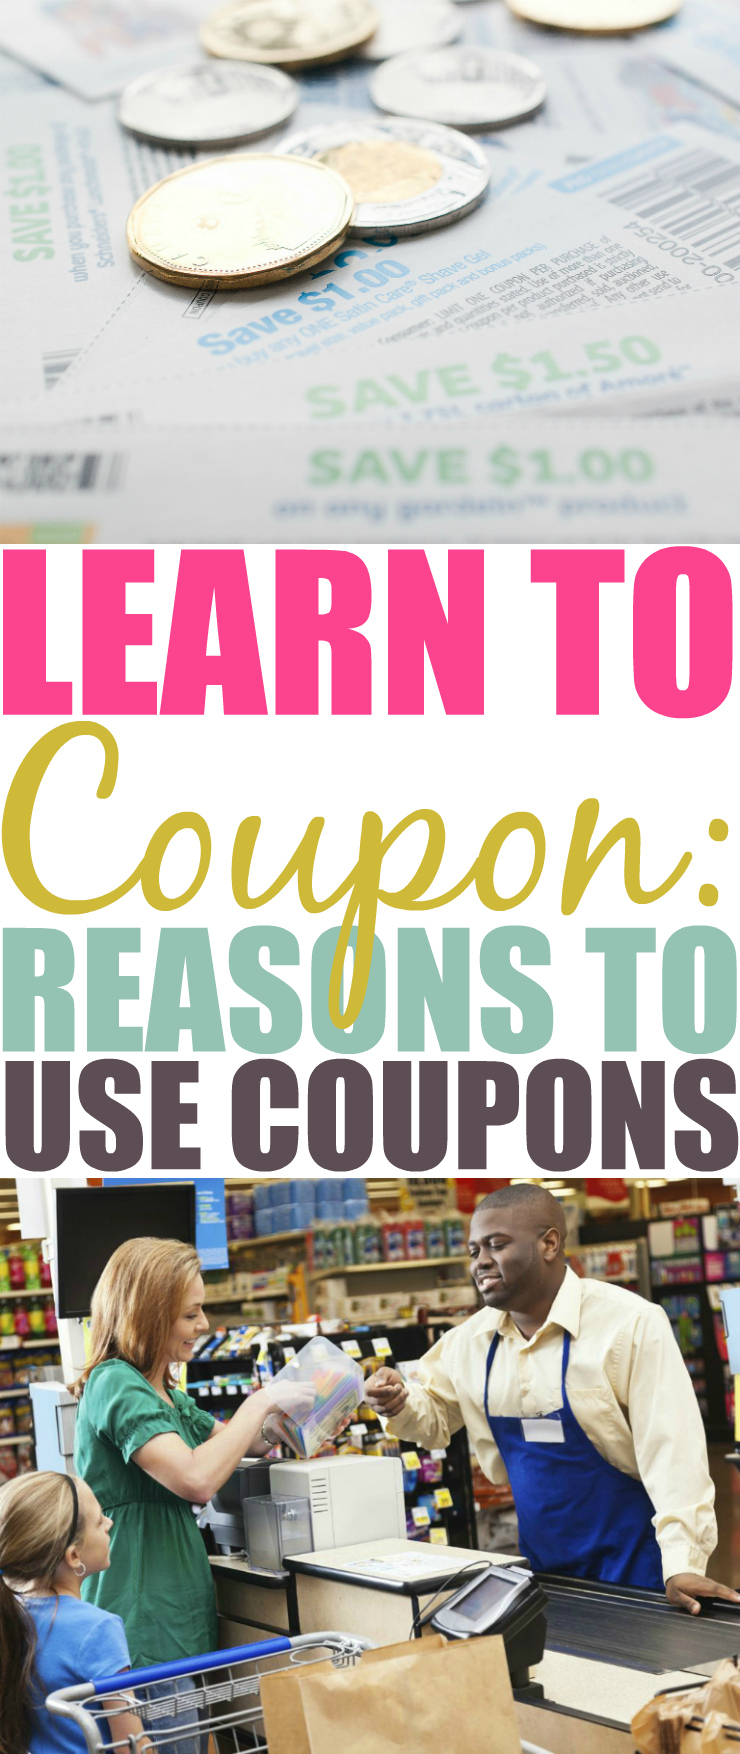 Learn To Coupon Reasons To Use Coupons